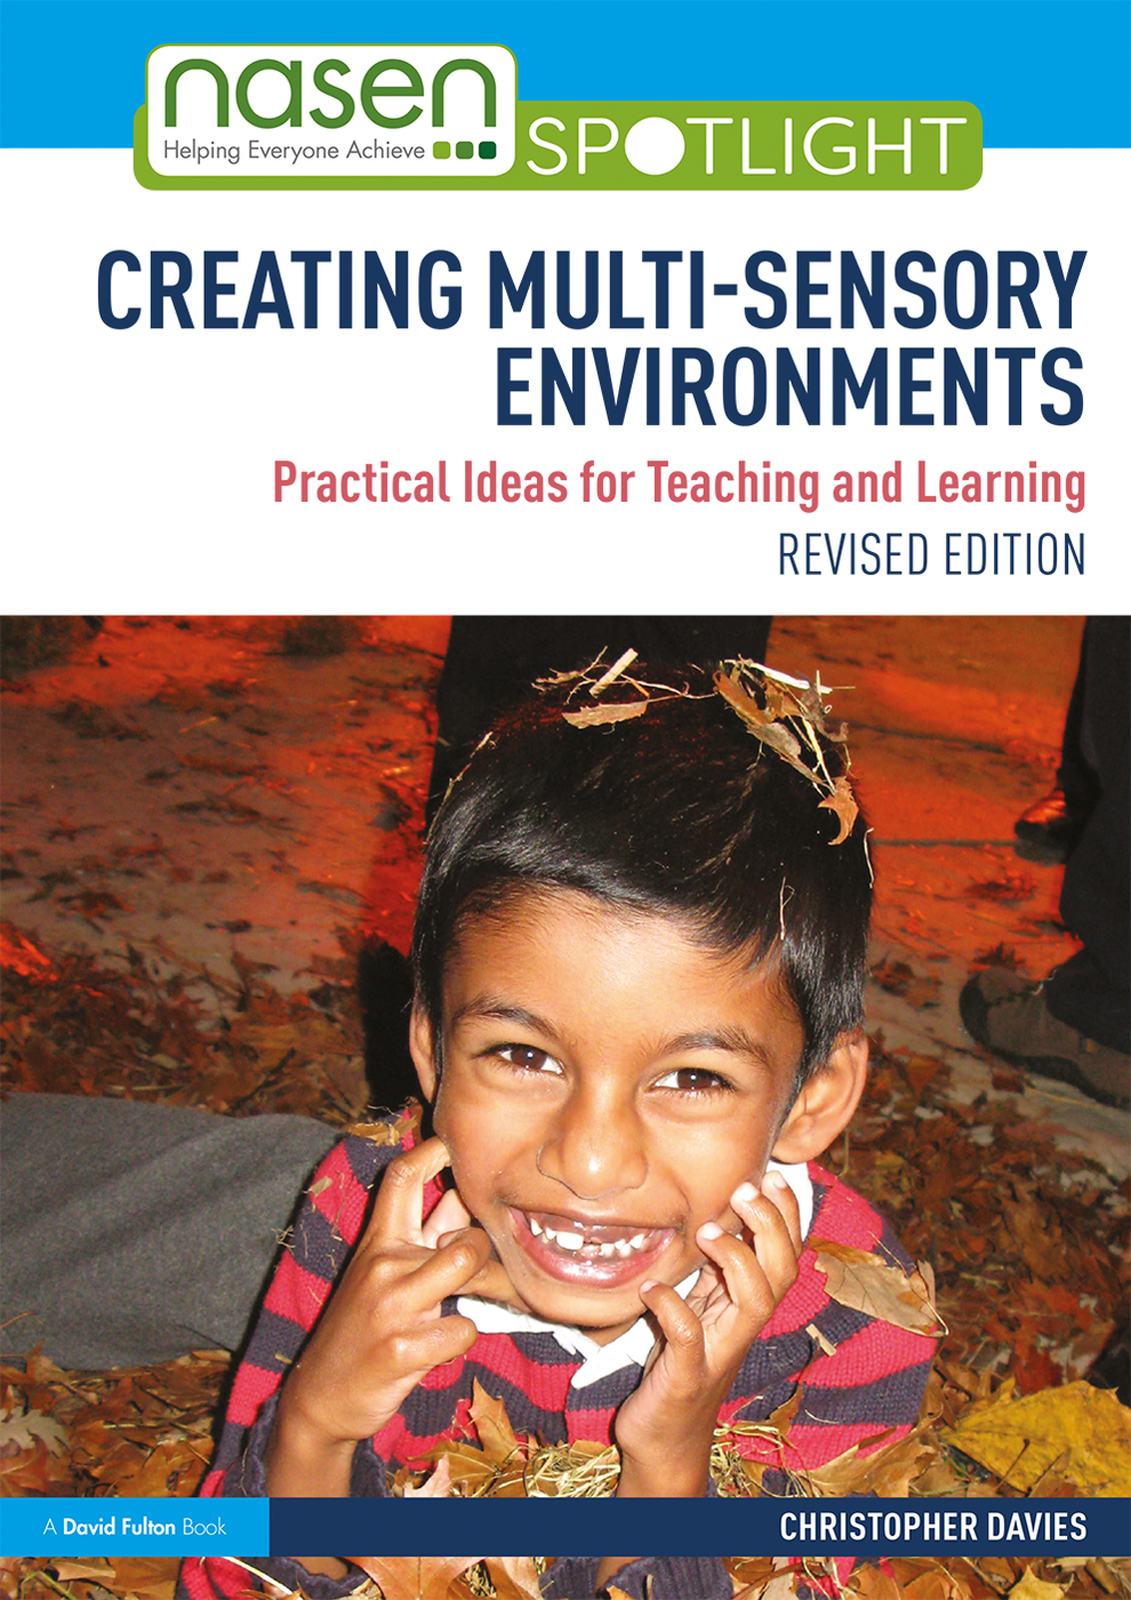 Creating Multi-sensory Environments: Practical Ideas for Teaching and Learning book cover